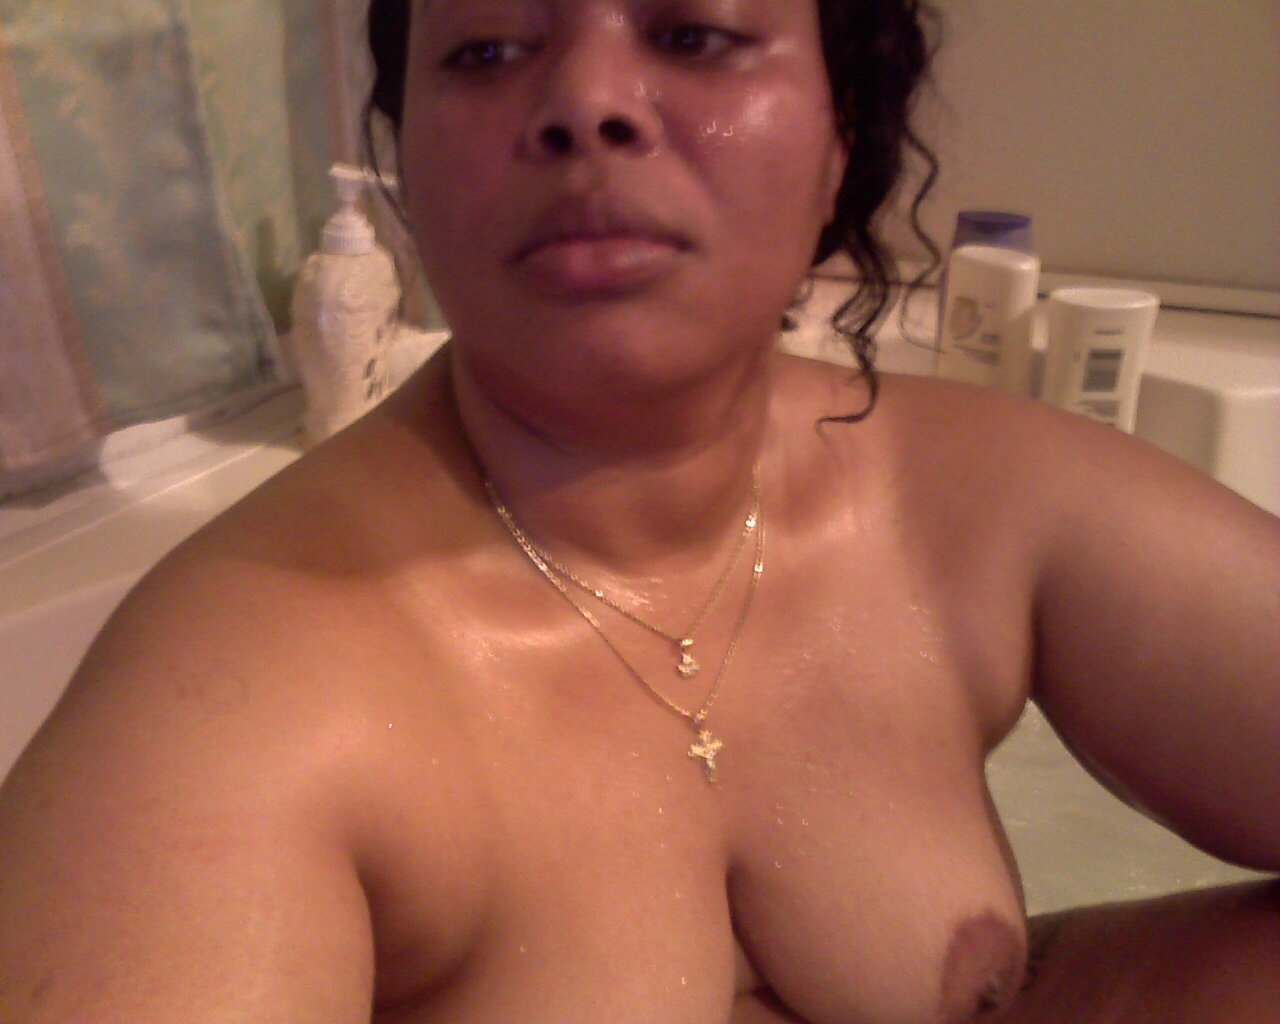 Not understand ebony milf nude selfies something